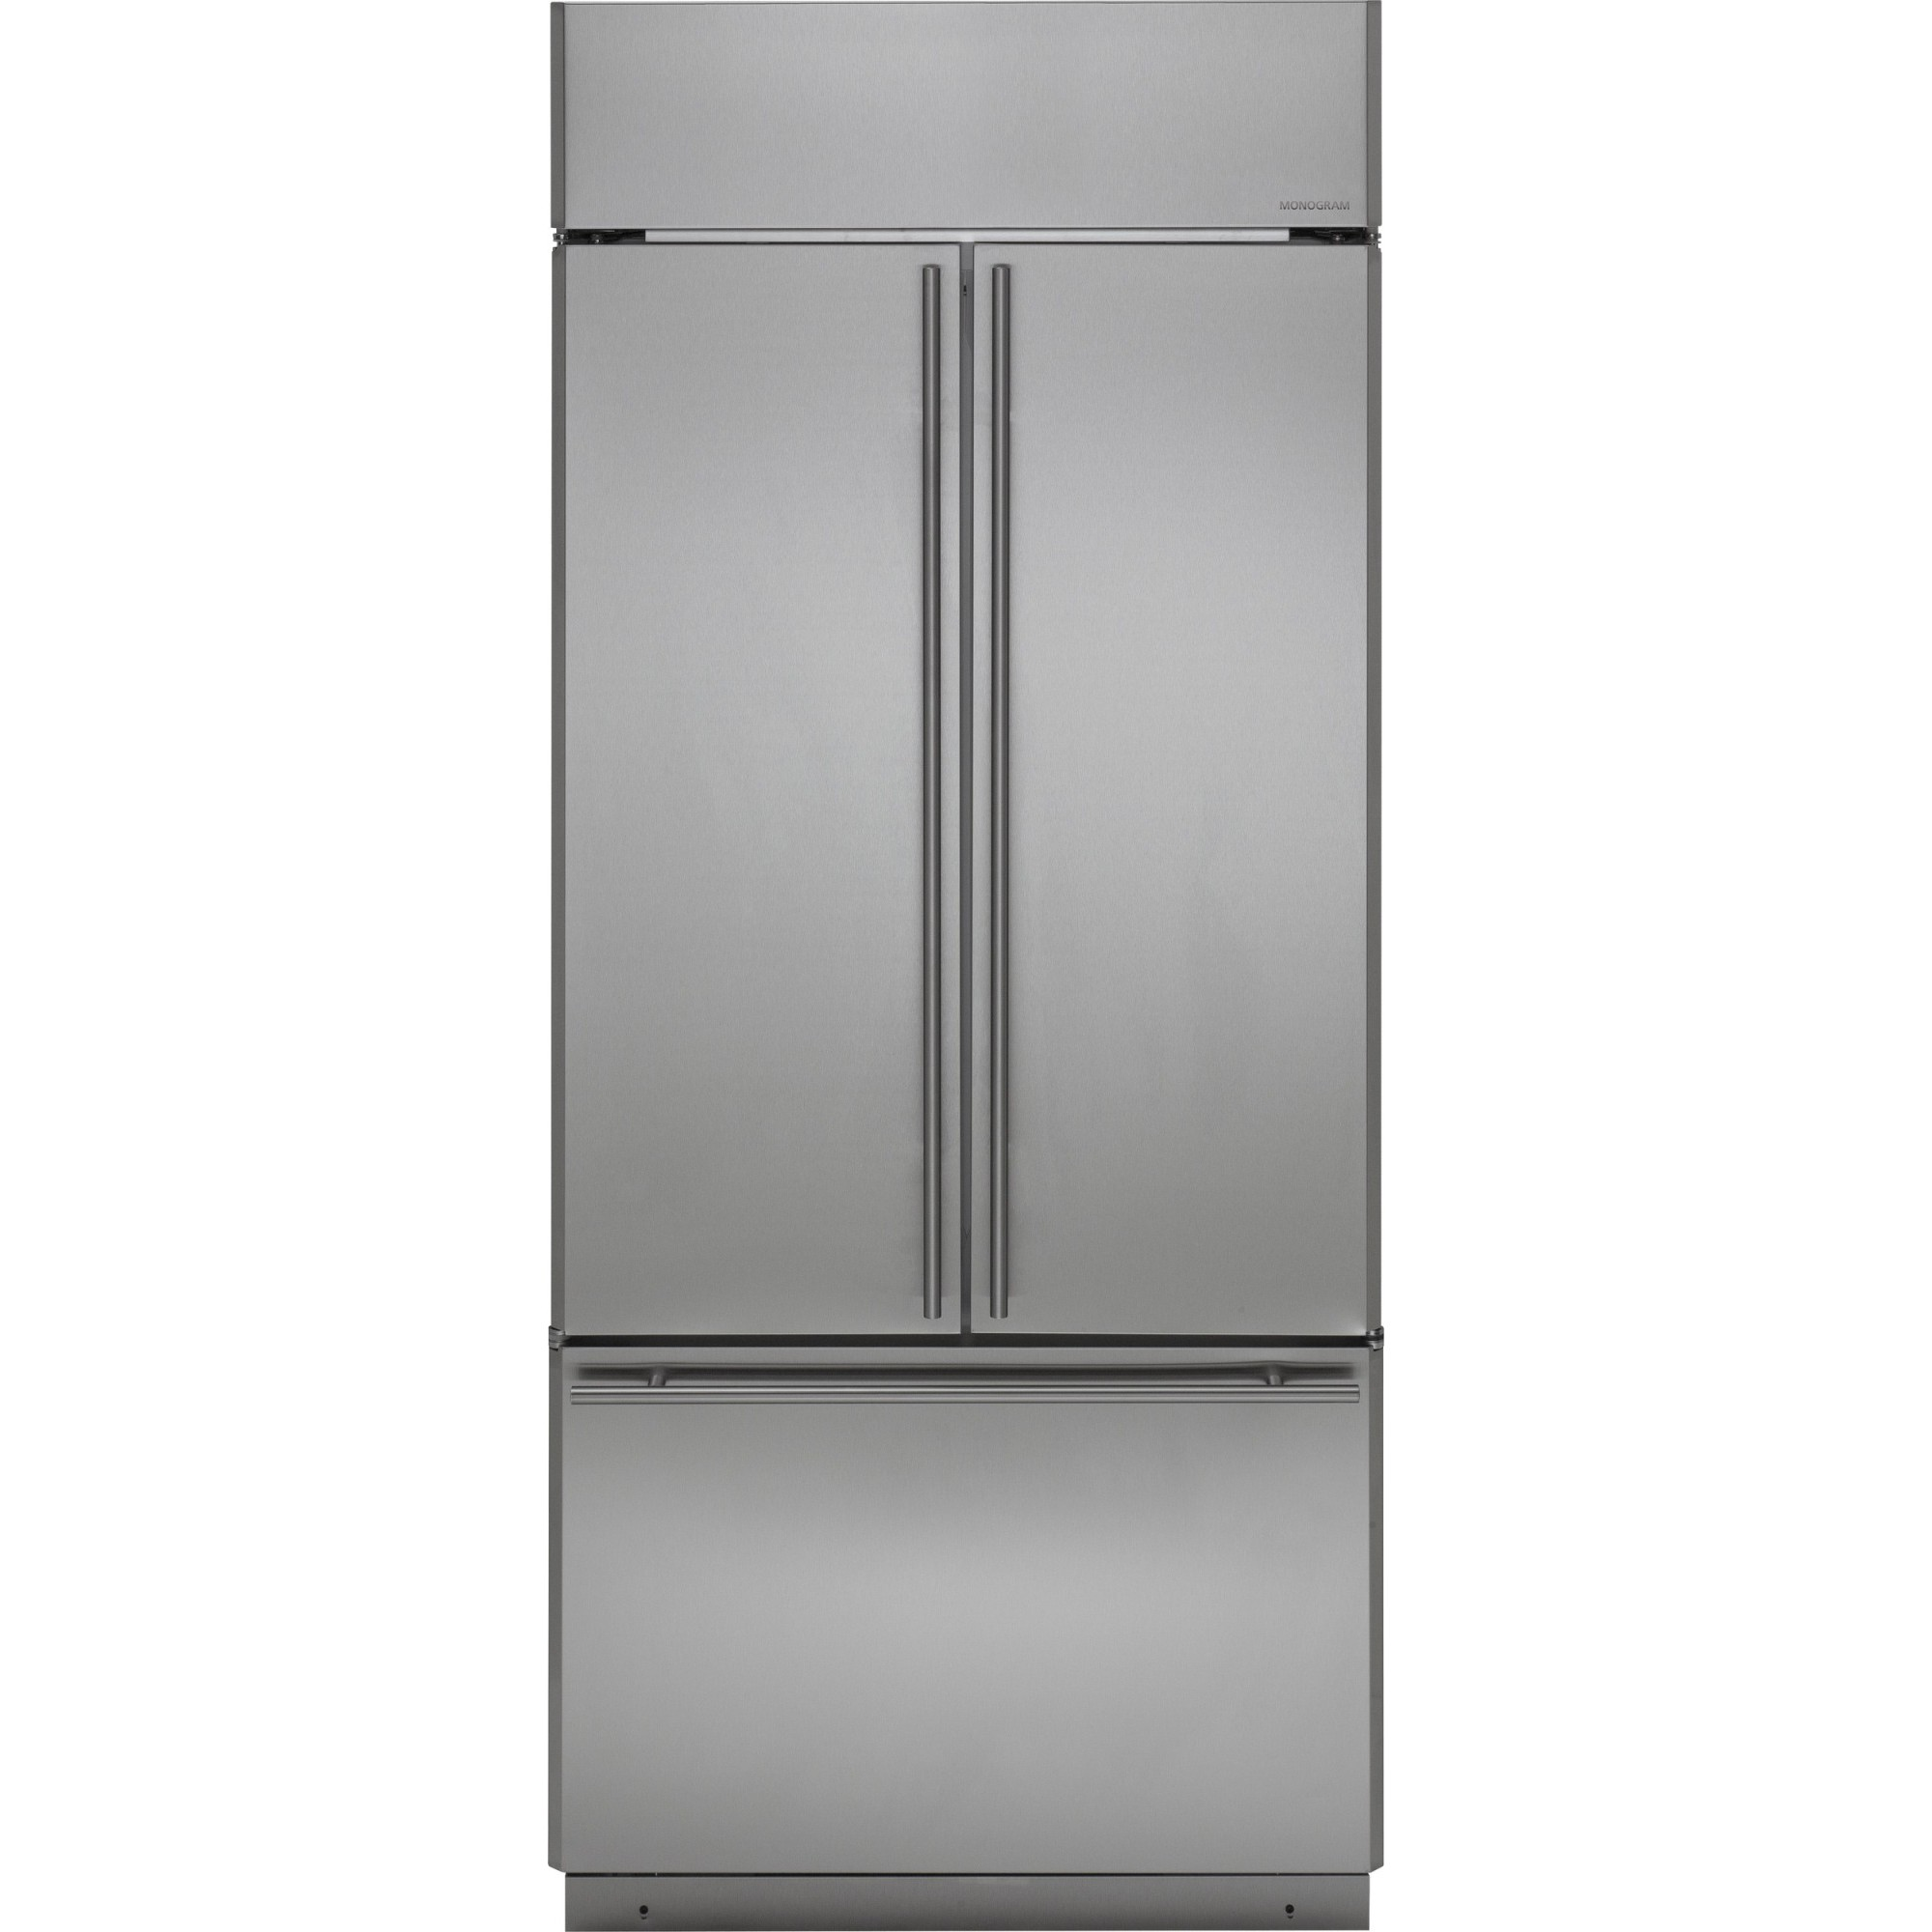 Zips360nhss Monogram 36 Quot Built In French Door Refrigerator